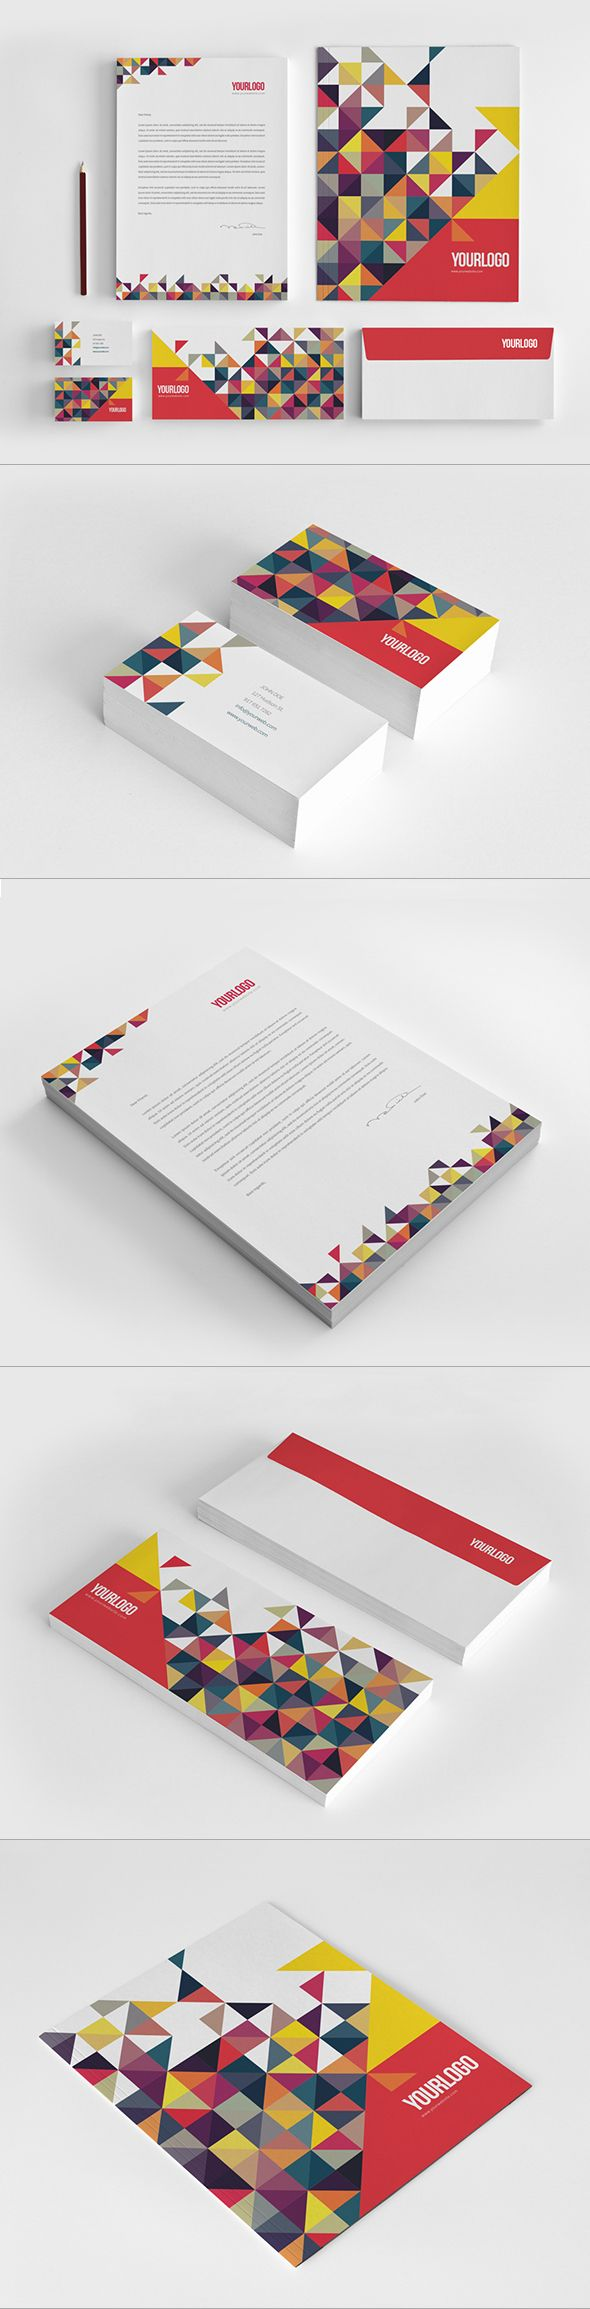 Colorful Triangles Stationery by Abra Design, via Behance #branding ...